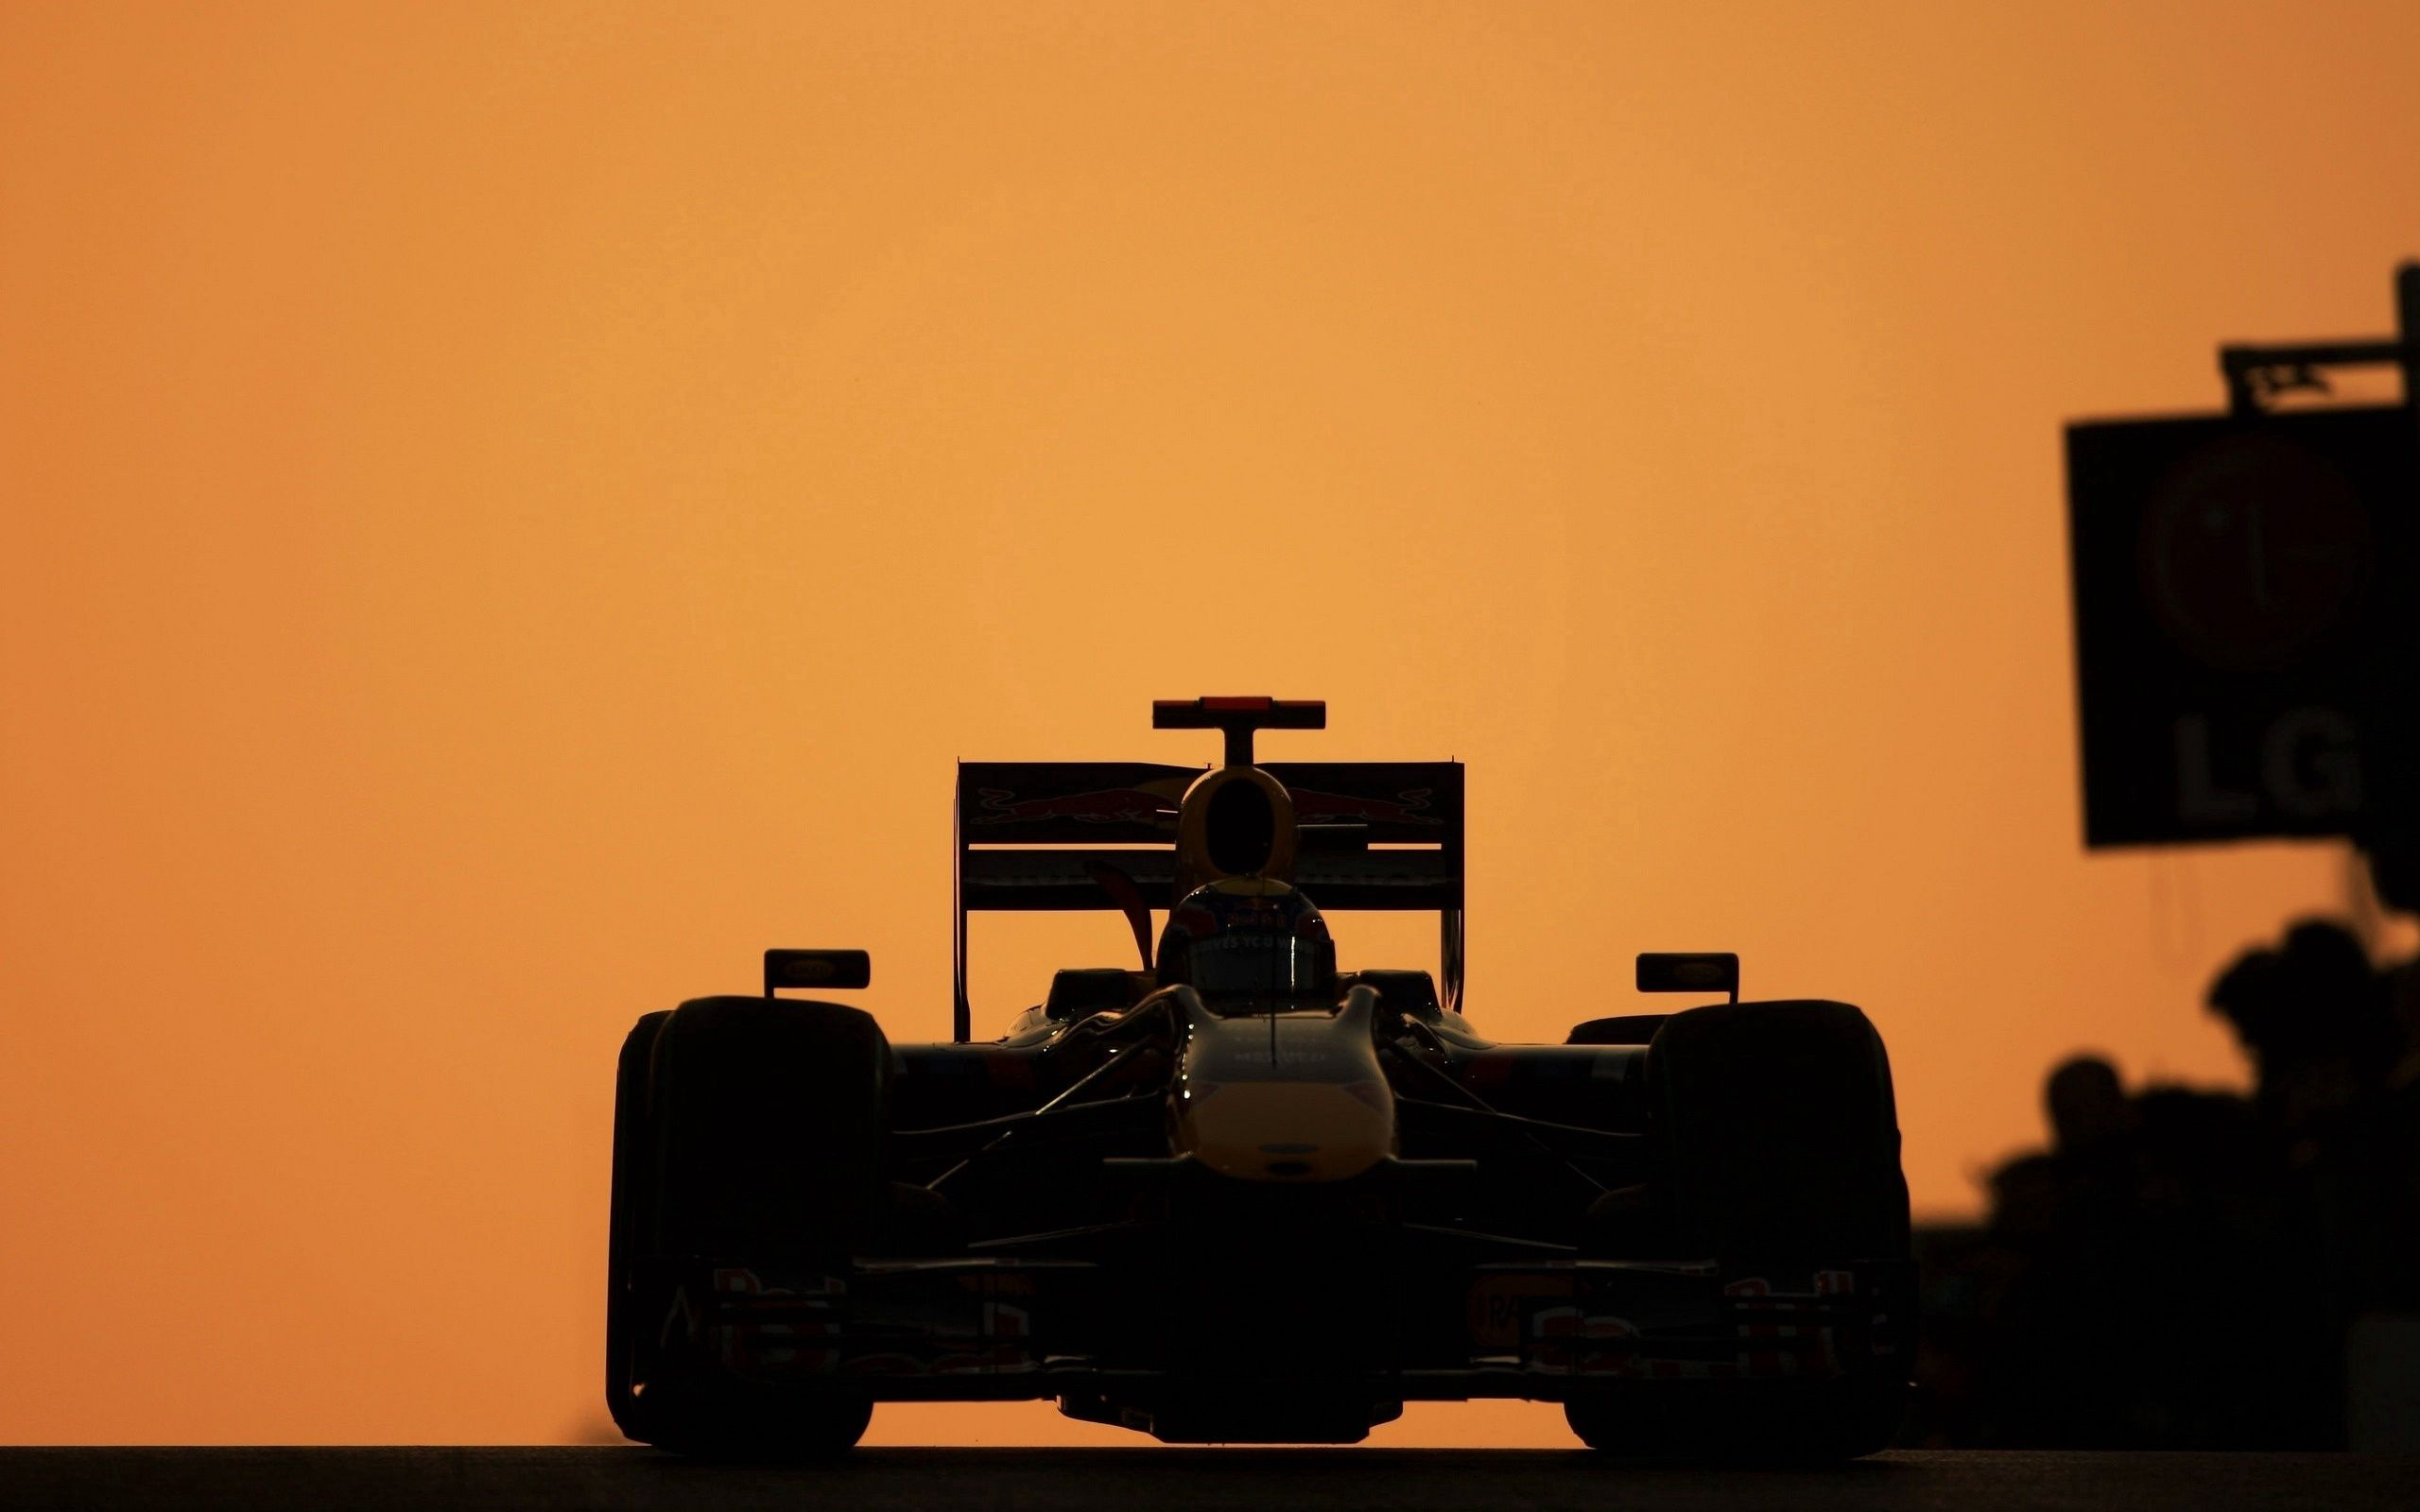 120195 Screensavers and Wallpapers Races for phone. Download Sports, Races, F1 pictures for free